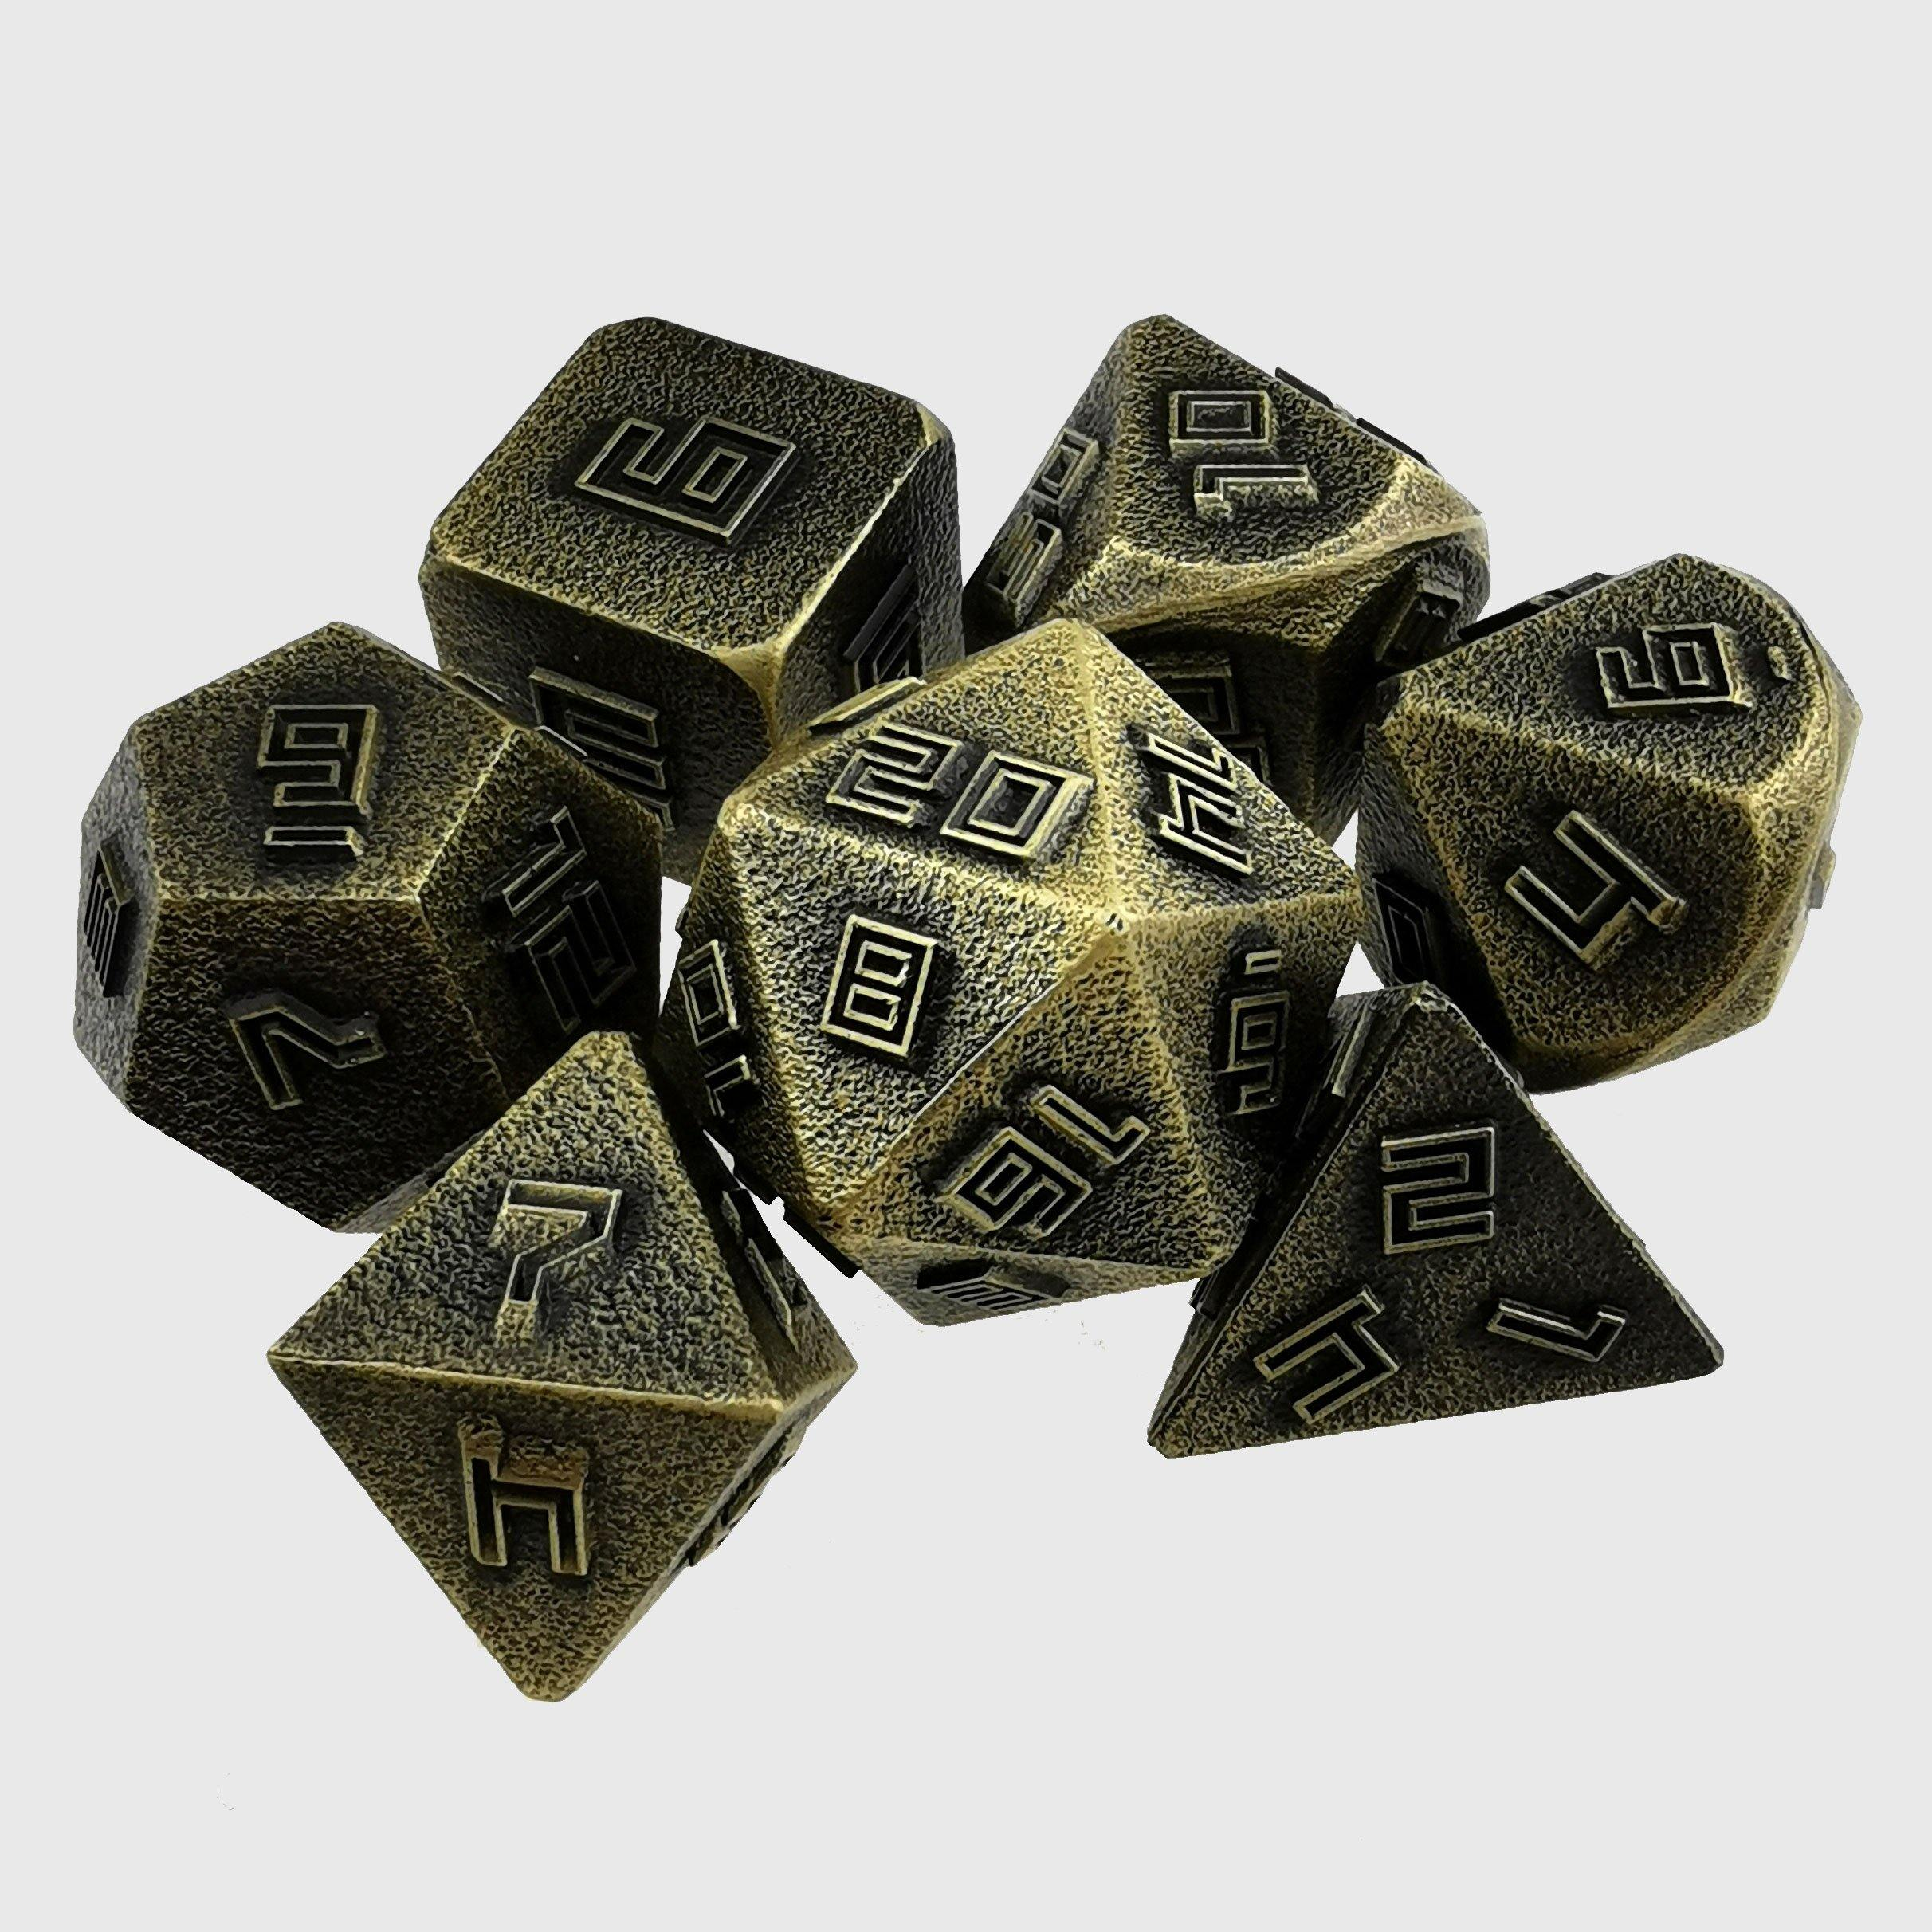 Forged Metal Relief Dice - Wyvern's Hoard